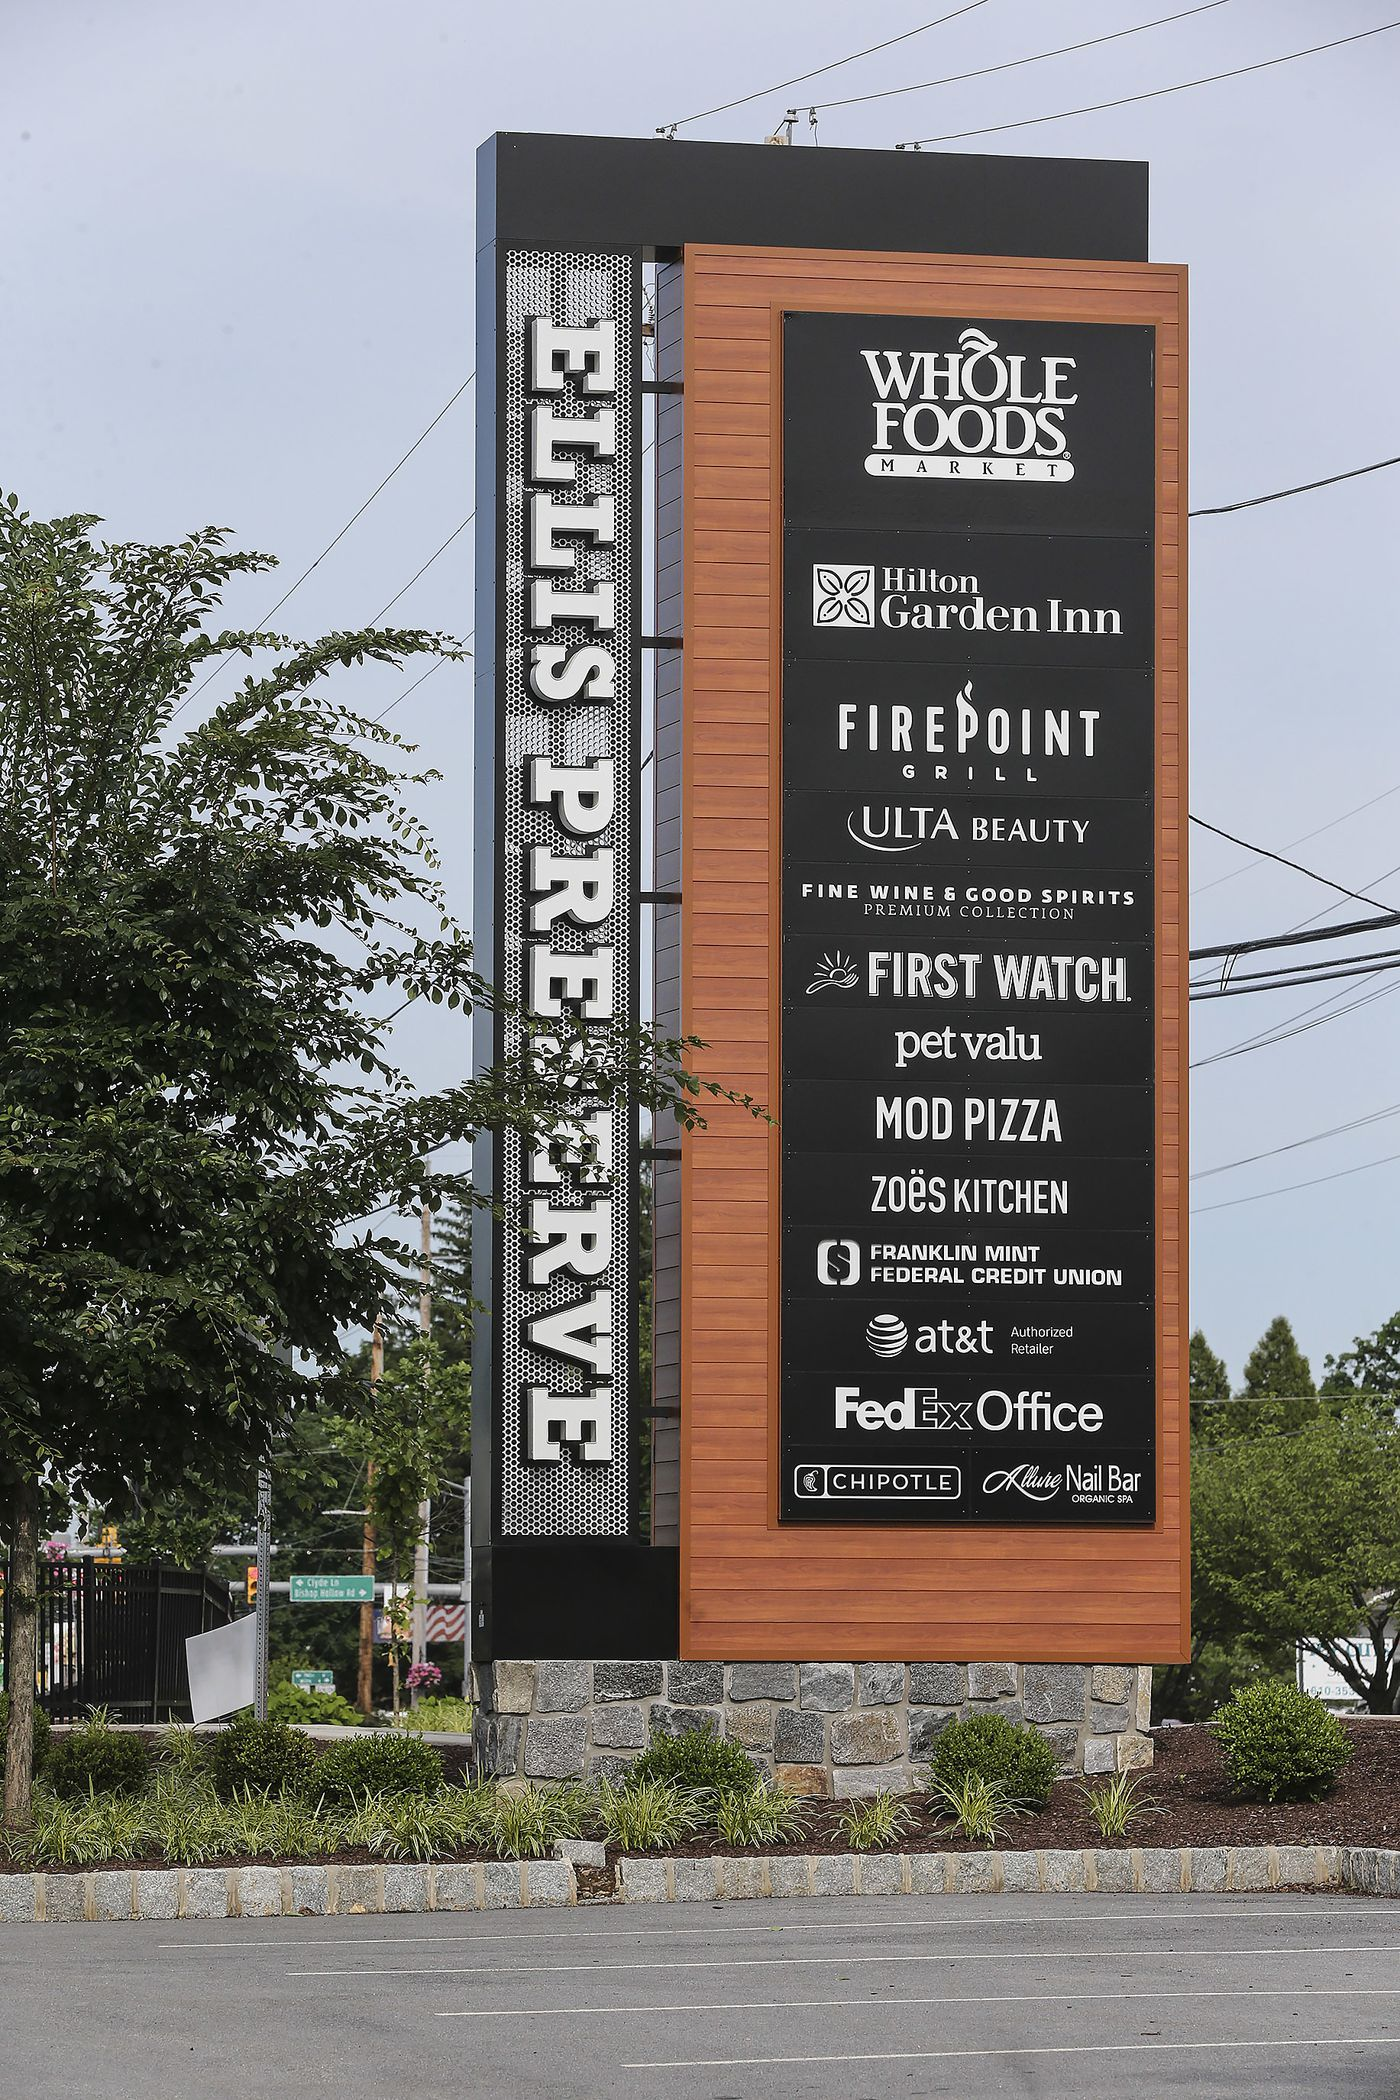 Whole foods to open in newtown square after years of delay and rumors for Hilton garden inn newtown square